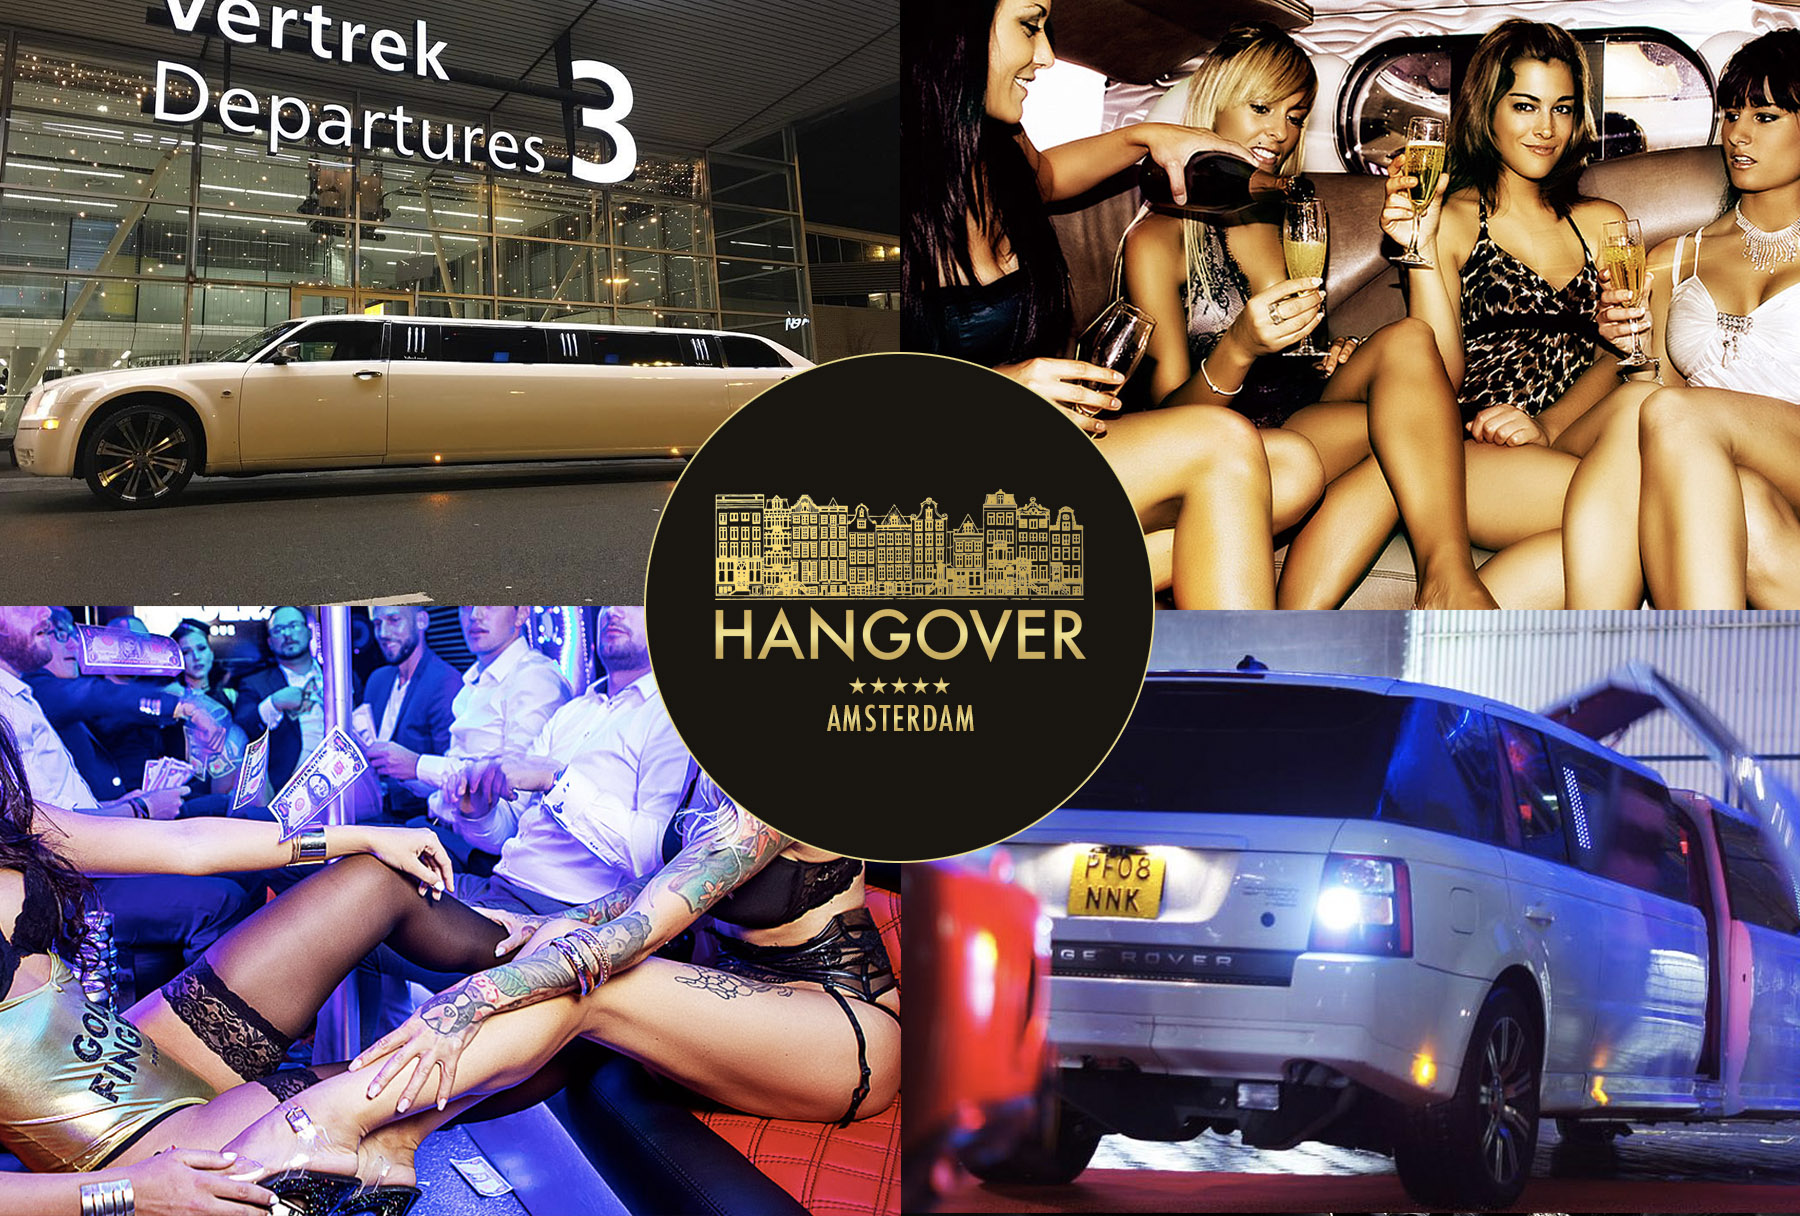 Curacao Bachelor & VIP Party Services – The Hangover Curacao